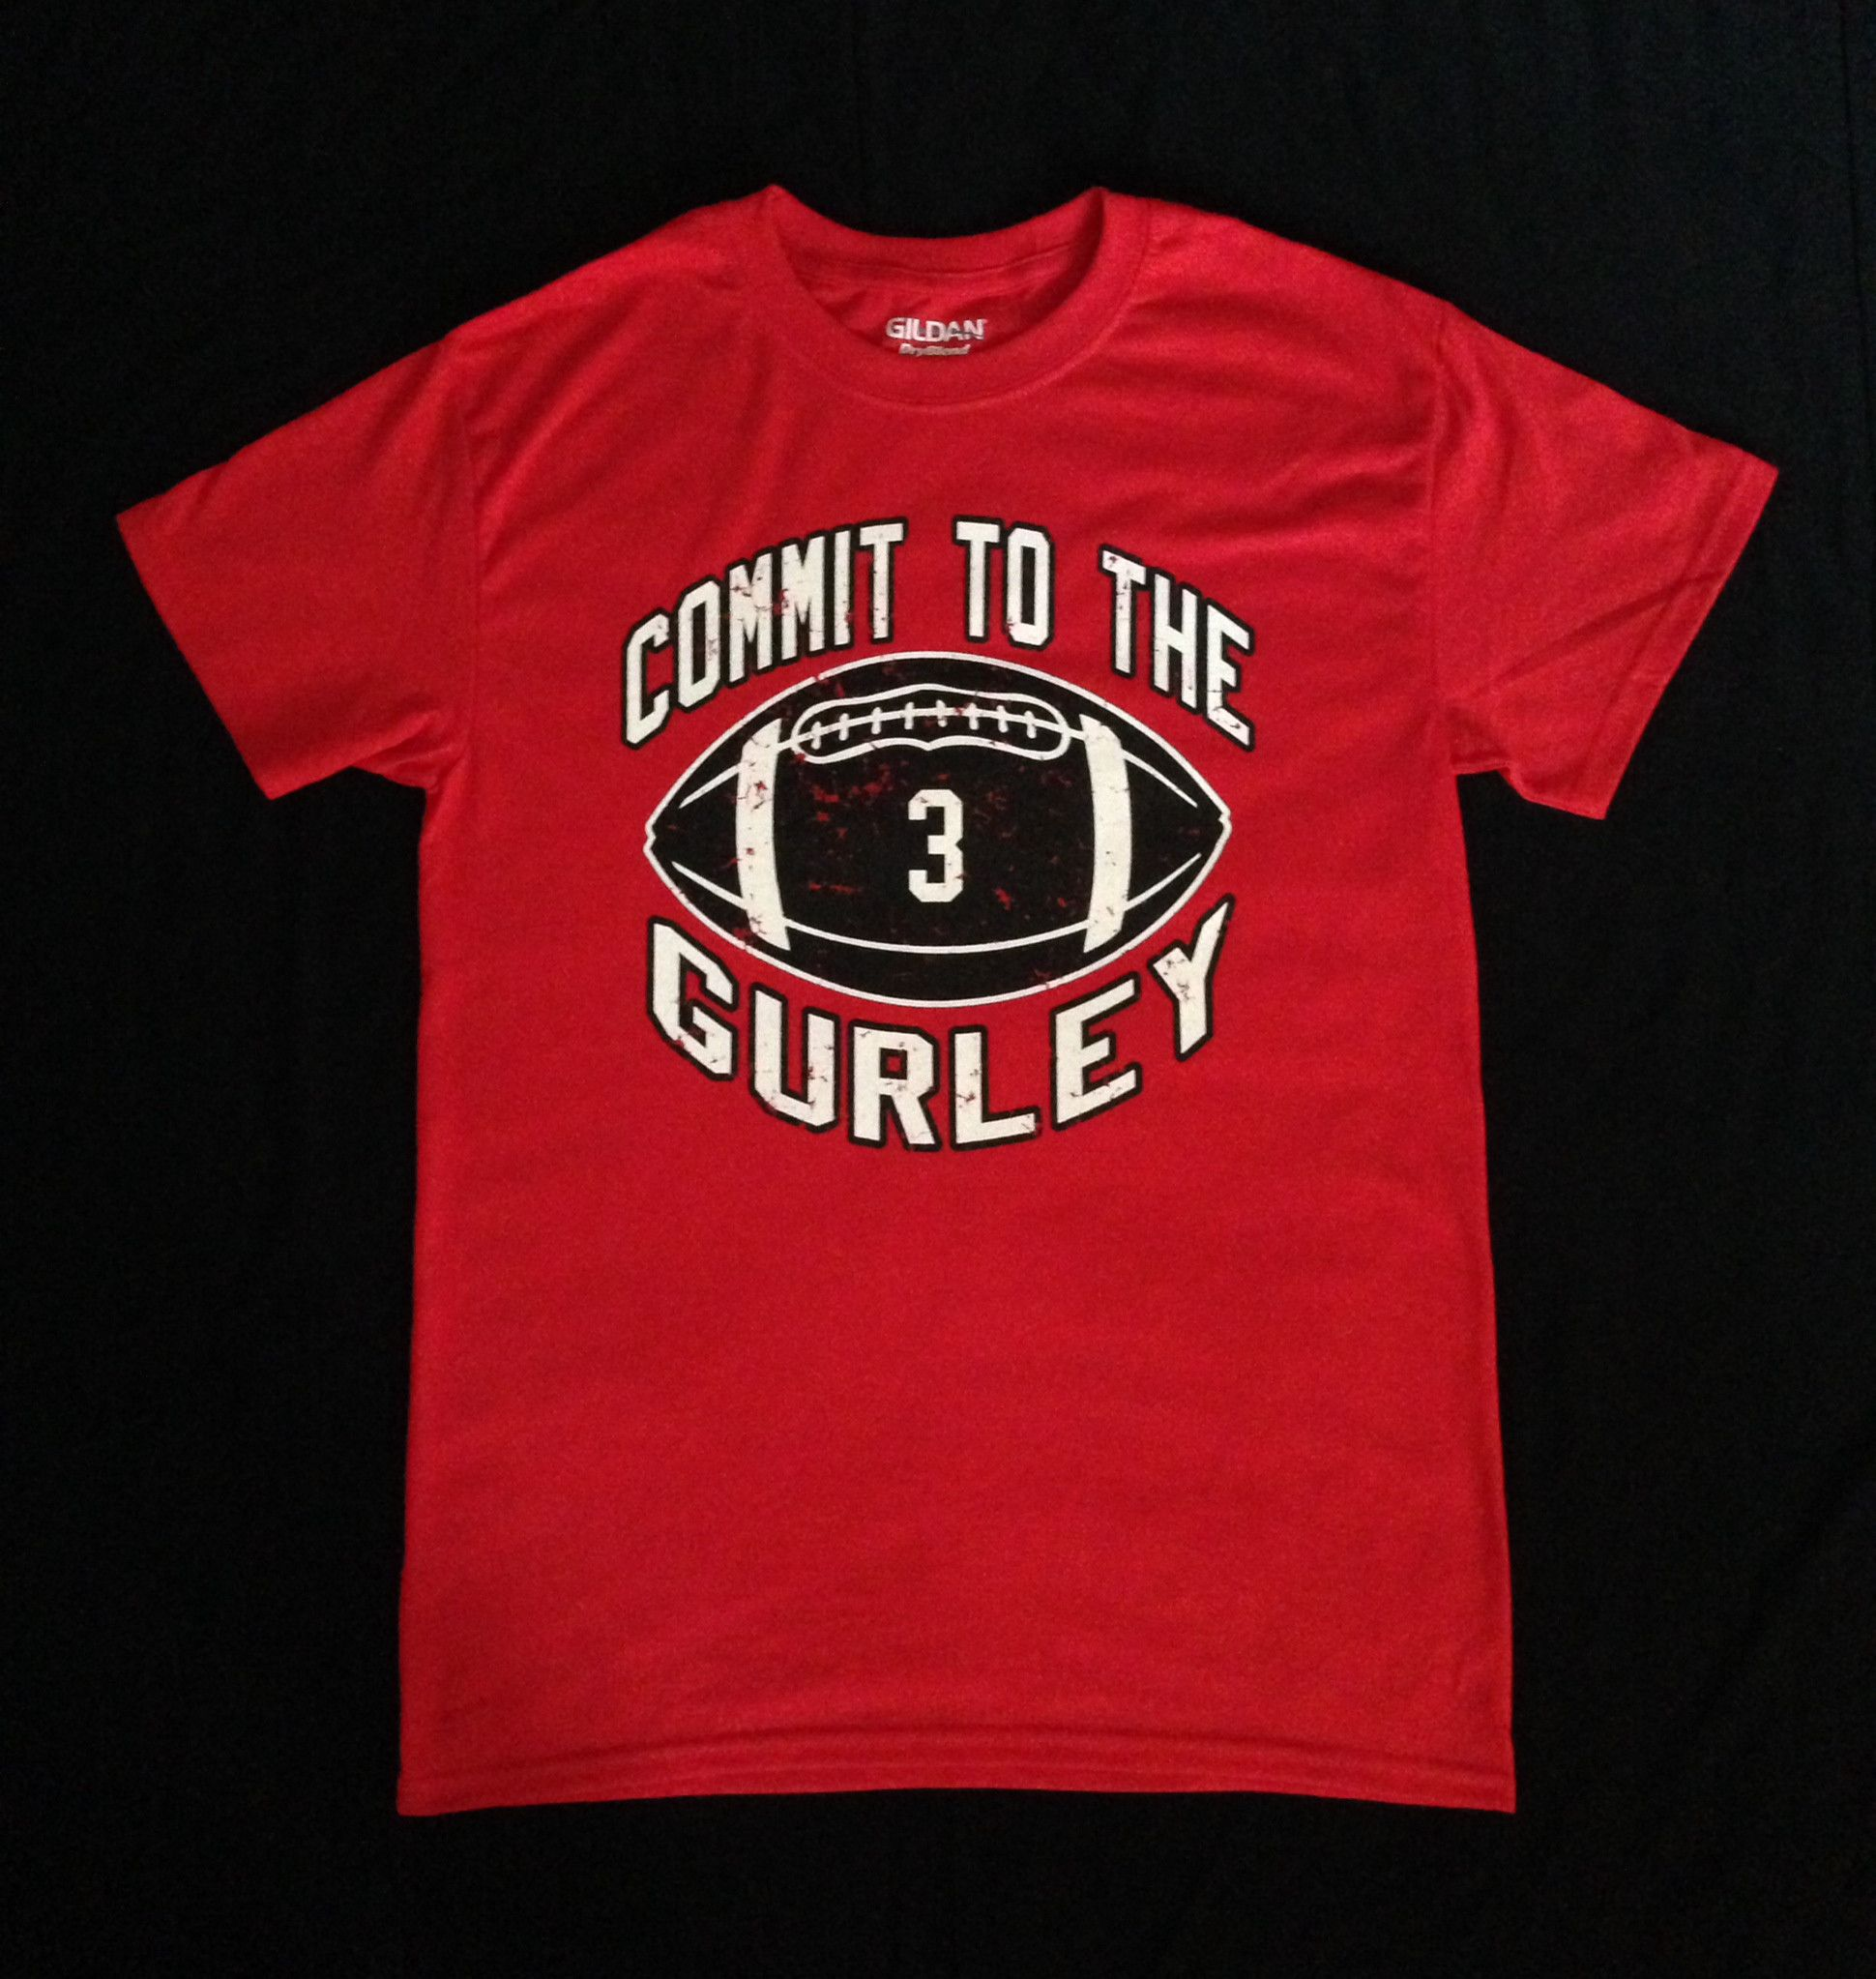 Commit To The Gurley Shirt Support Todd Gurley This College Football Season Godawgs College Football Season Georgia Bulldogs Football Todd Gurley